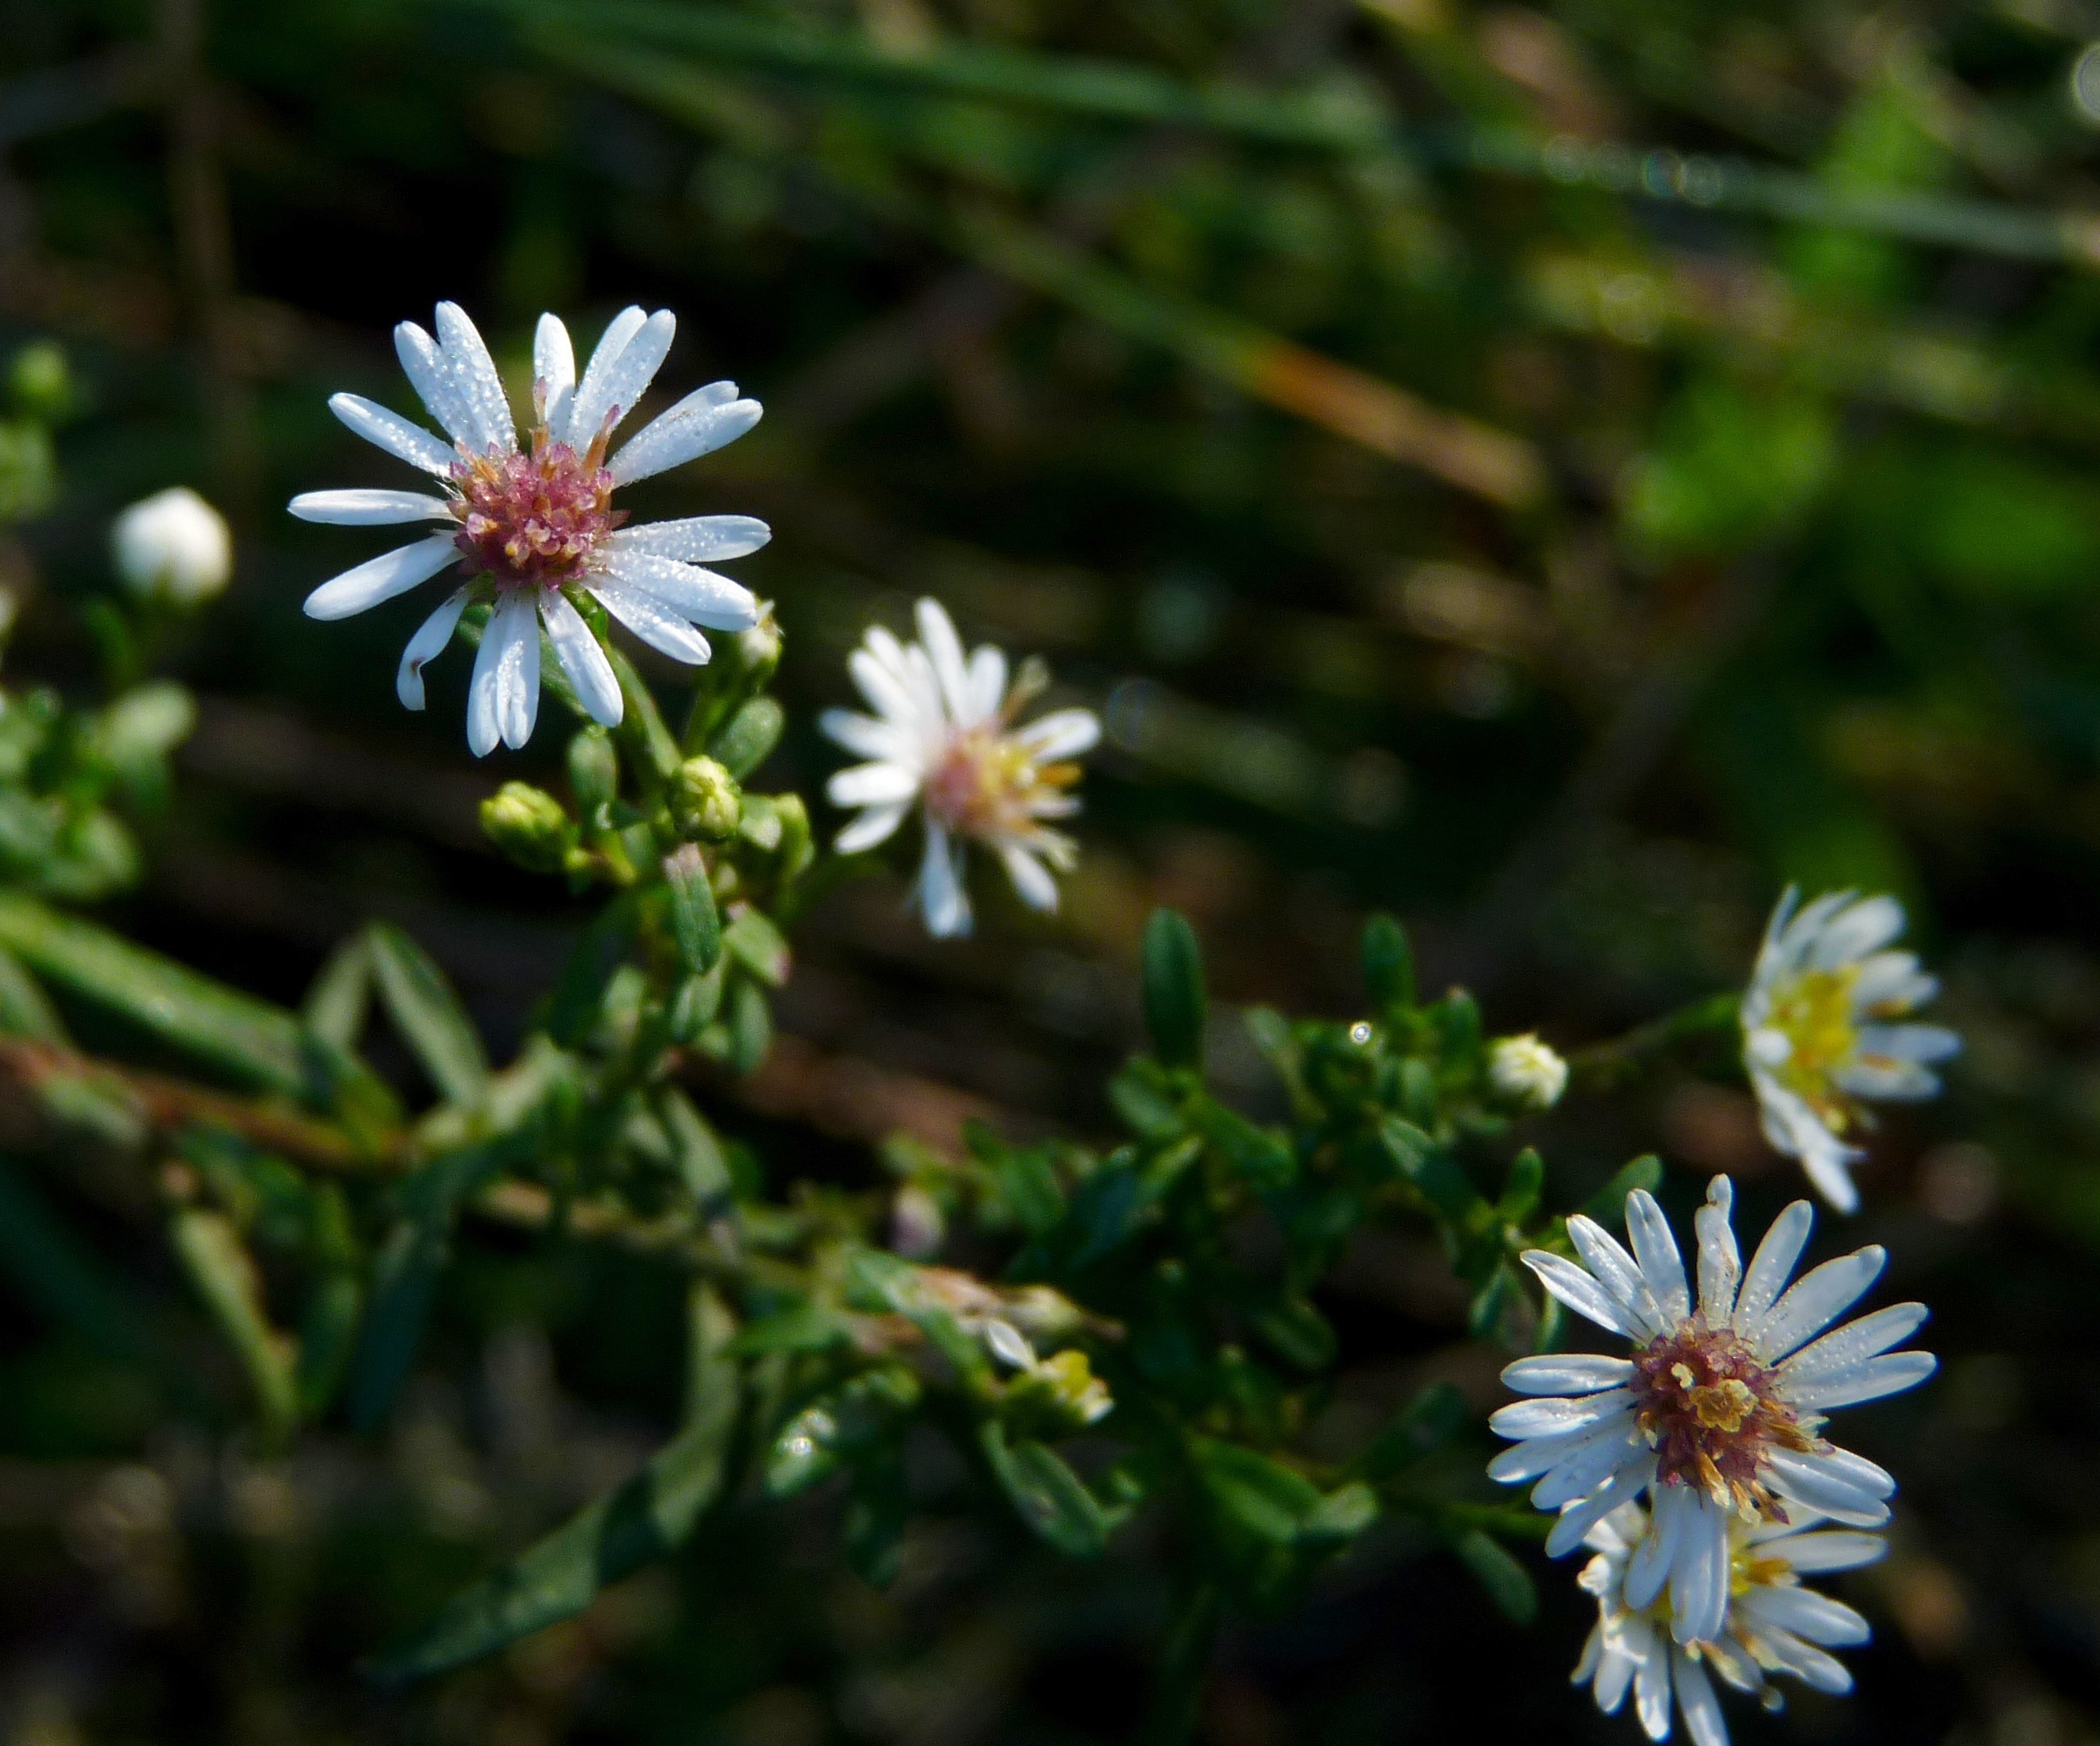 Image of calico aster